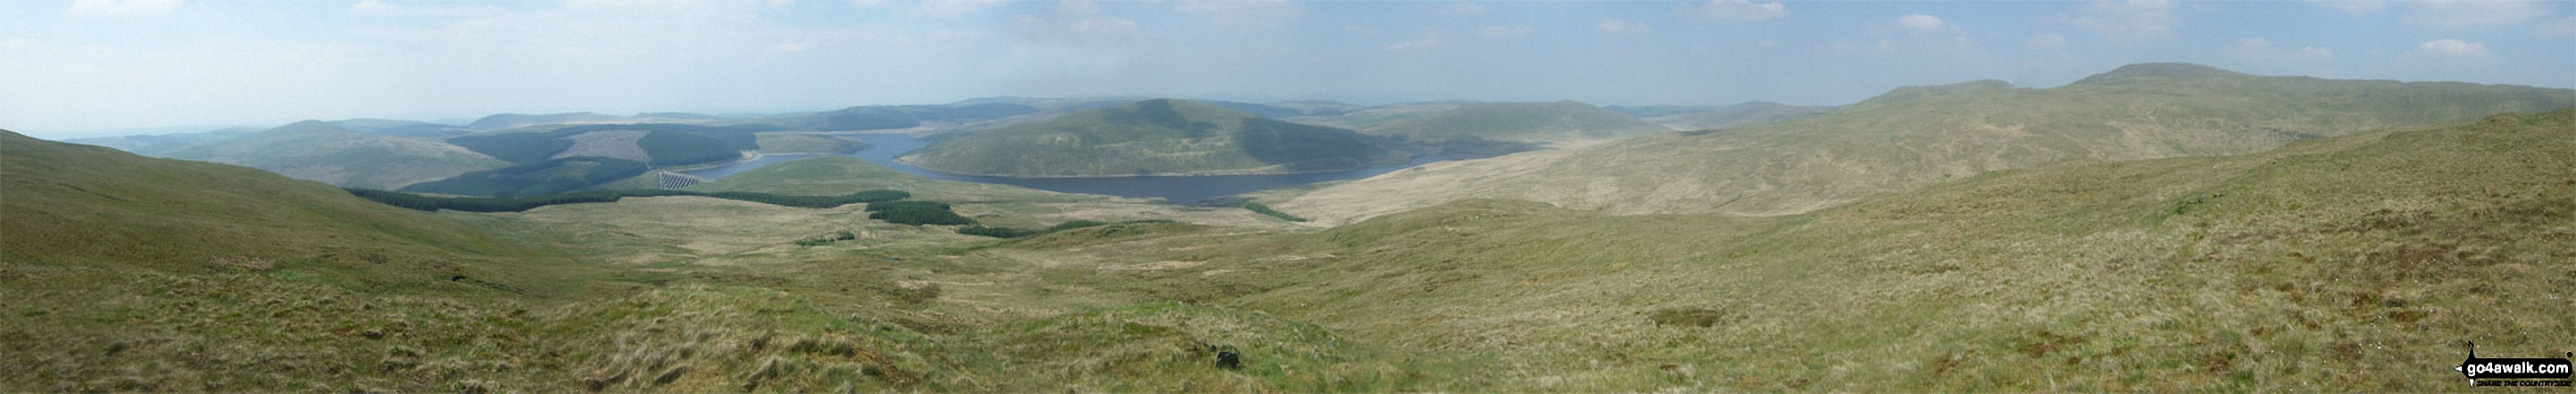 Nant-y-moch Reservoir, Drosgol (Pumlumon) and Pen Pumlumon Fawr (Plynlimon) from Y Garn (Pumlumon)